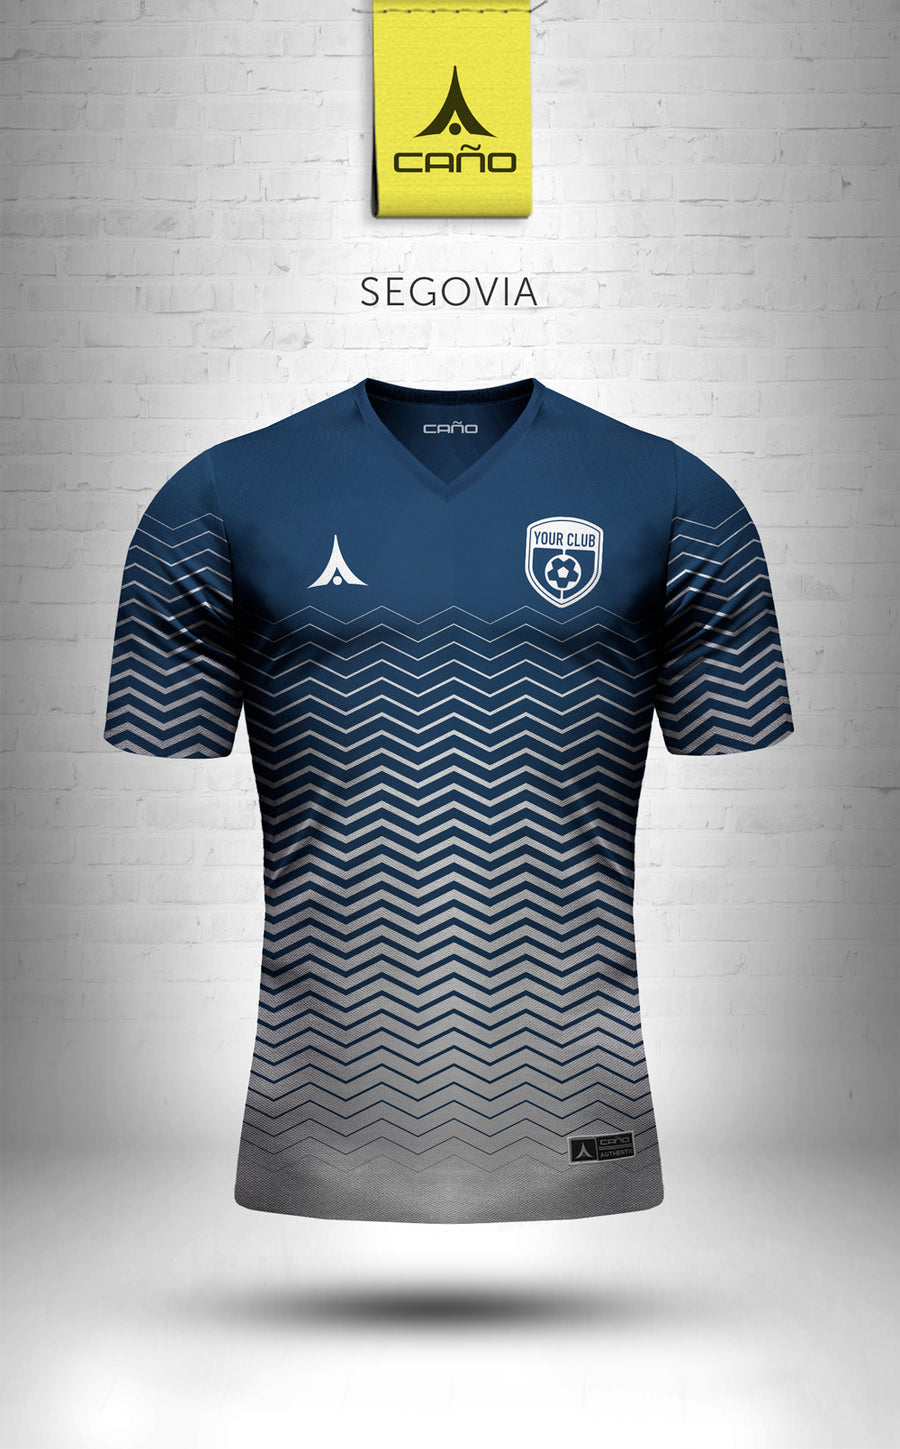 Segovia in navy/white